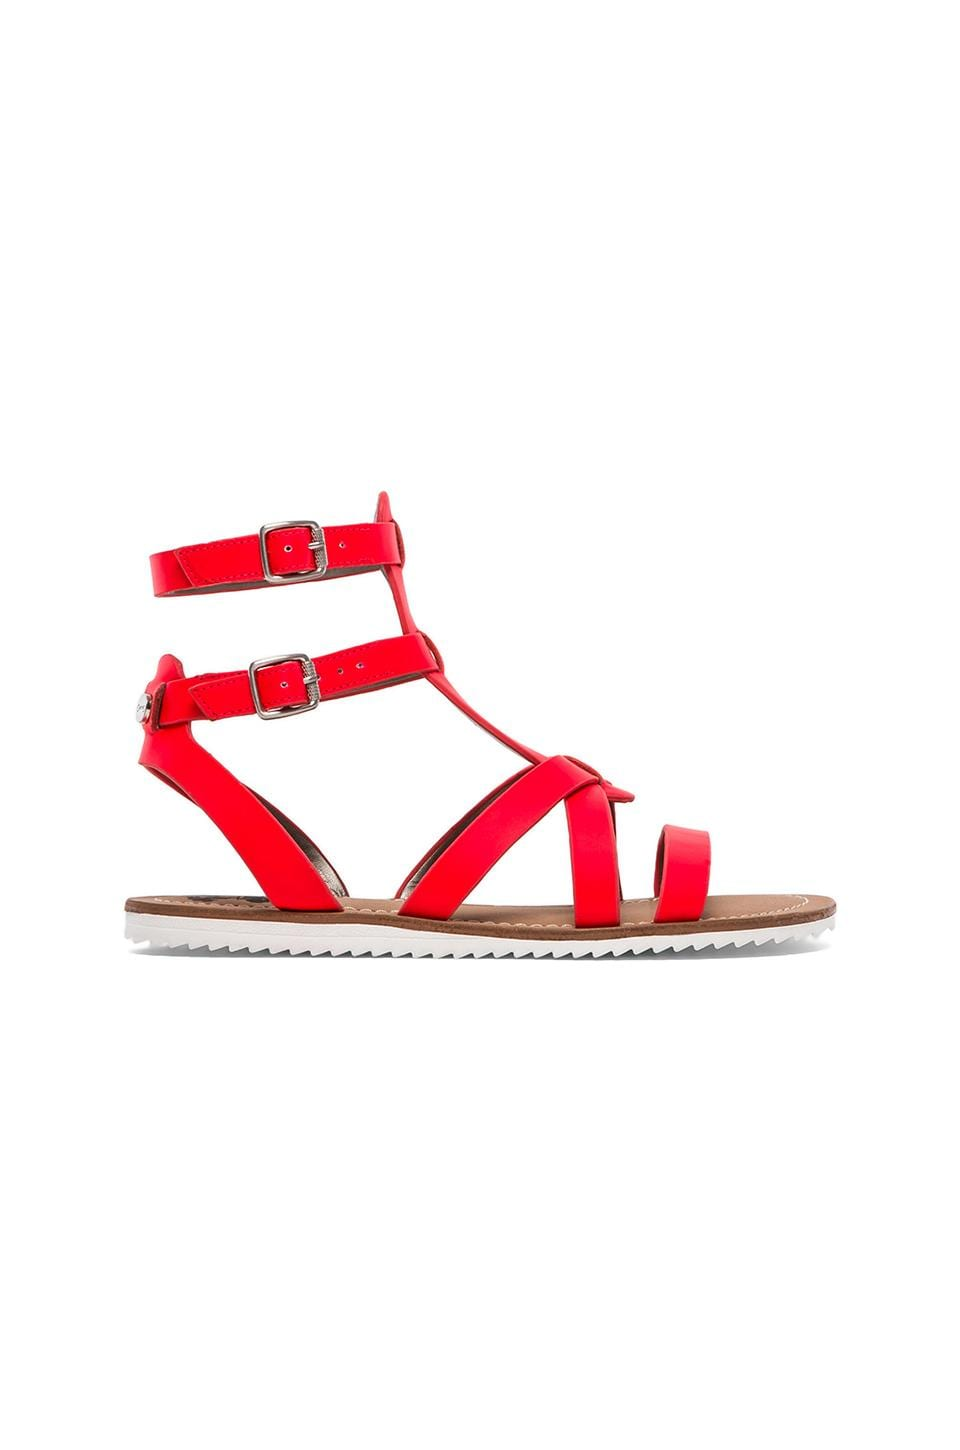 Circus by Sam Edelman Selma Sandal in Electric Orange